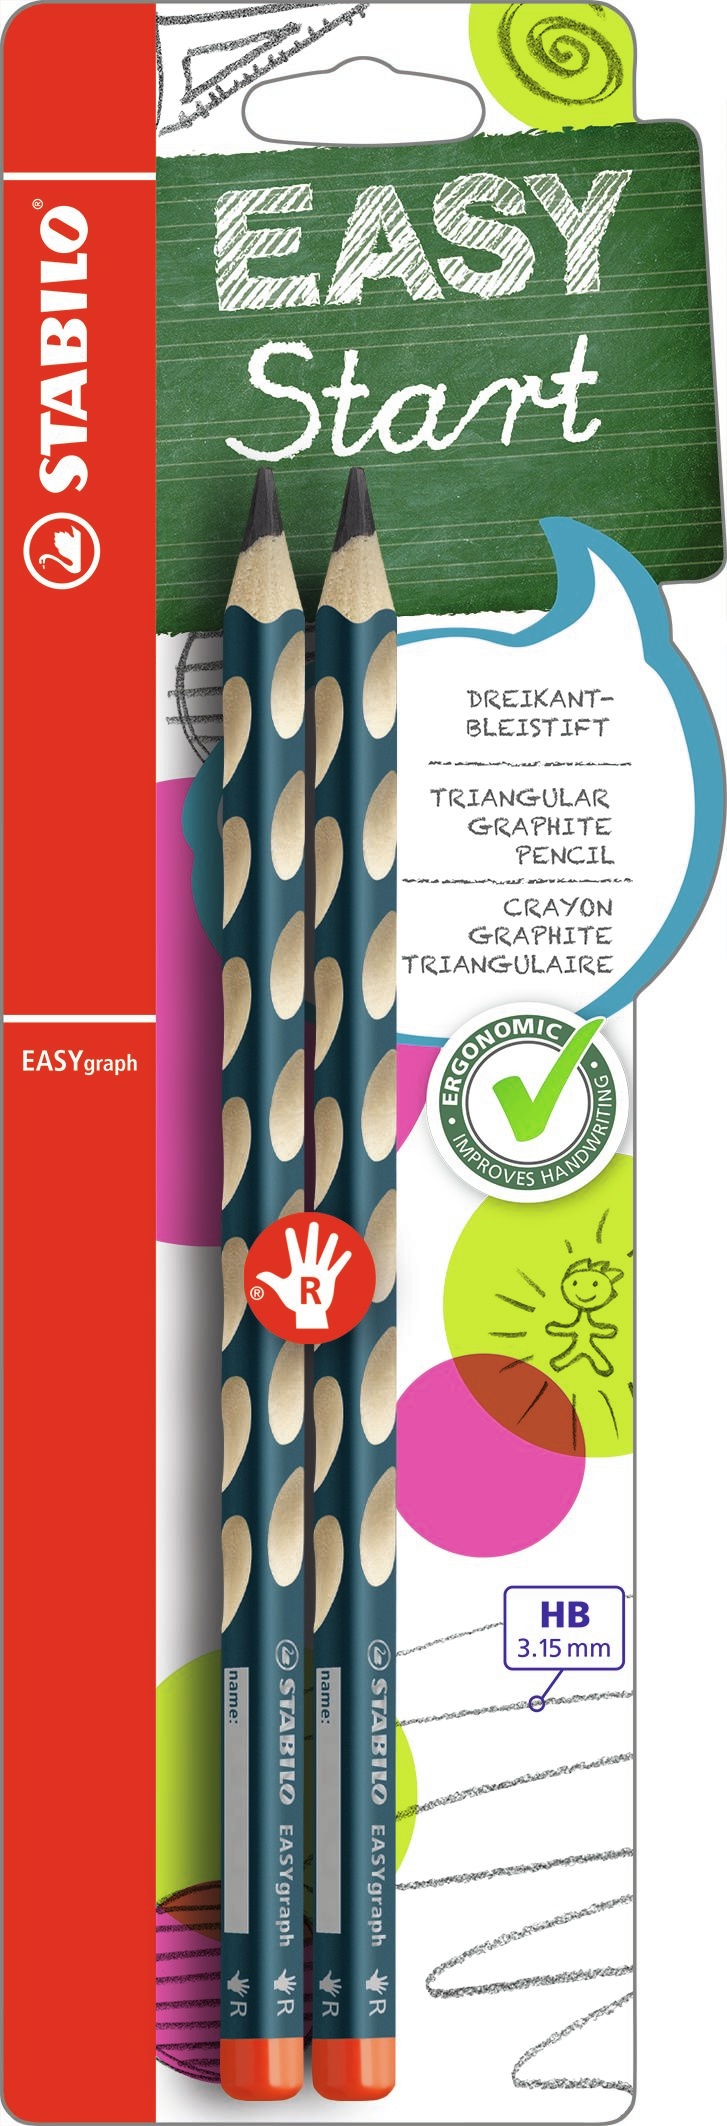 stabilo Stabilo Easygraph Hb Pencil Right Petrol Blister Of 2 B-39890-10 - AD01